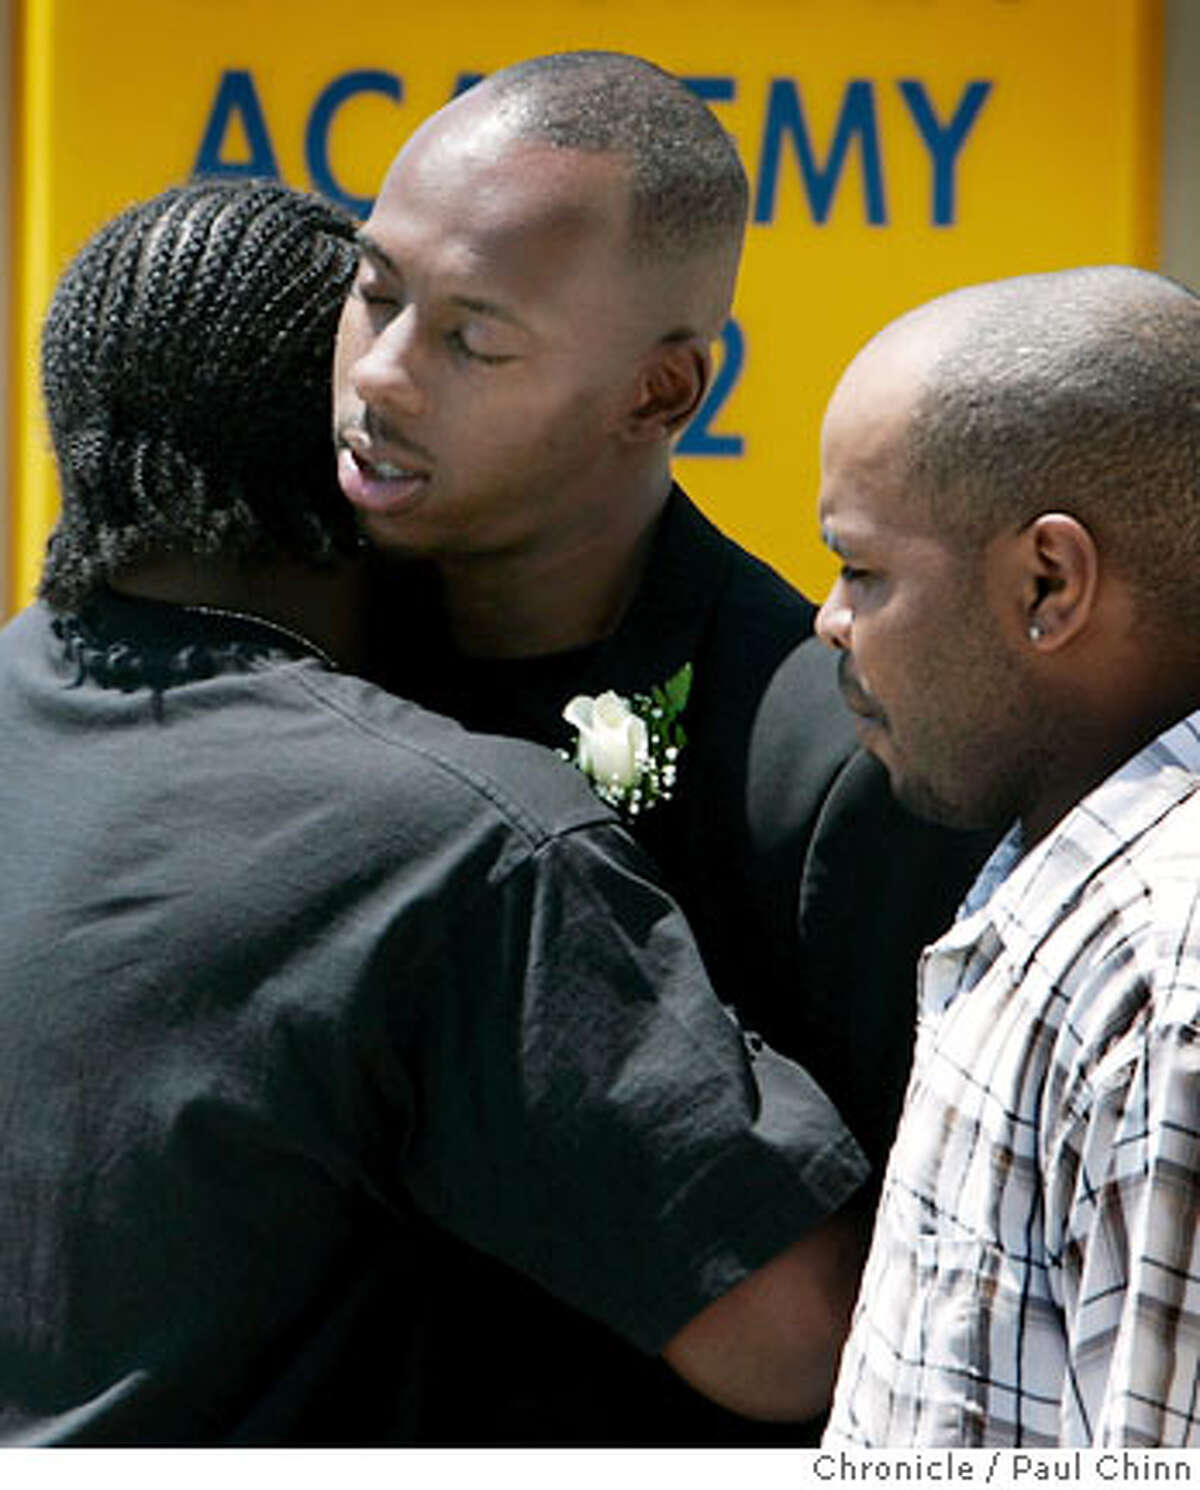 Prentice Walker (center) is consoled after the funeral service for his brother Carlnell Walker in Richmond, Calif. on Friday, July 21, 2006, who was found dead in the trunk of a car last week in Riverdale, Georgia. Three suspects have been arrested and a fourth is being sought for killing Carlnell Walker, who was a student at Morehouse College in Atlanta. PAUL CHINN/The Chronicle **Carlnell Walker, Prentice Walker